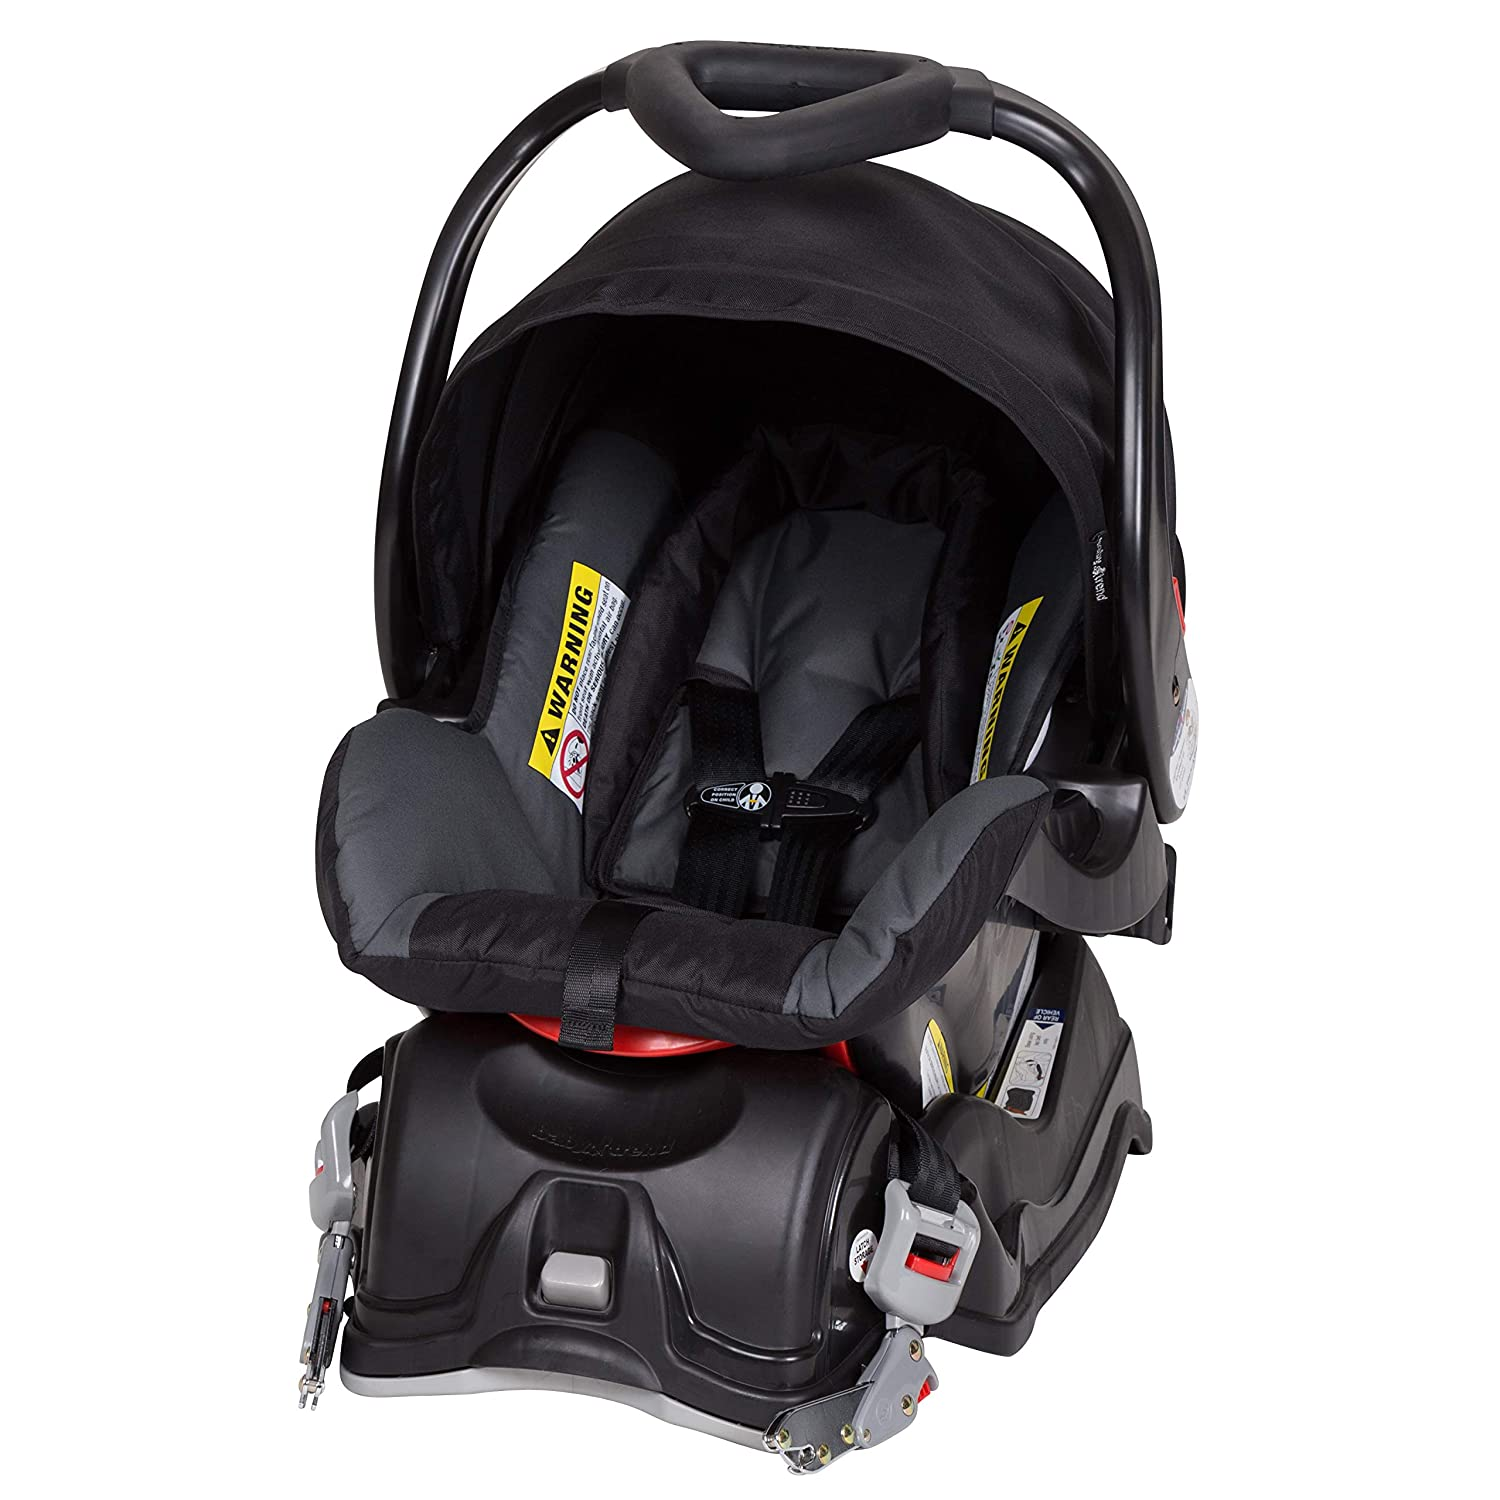 Baby Trend Ez Flex-Loc 30 Infant Car Seat